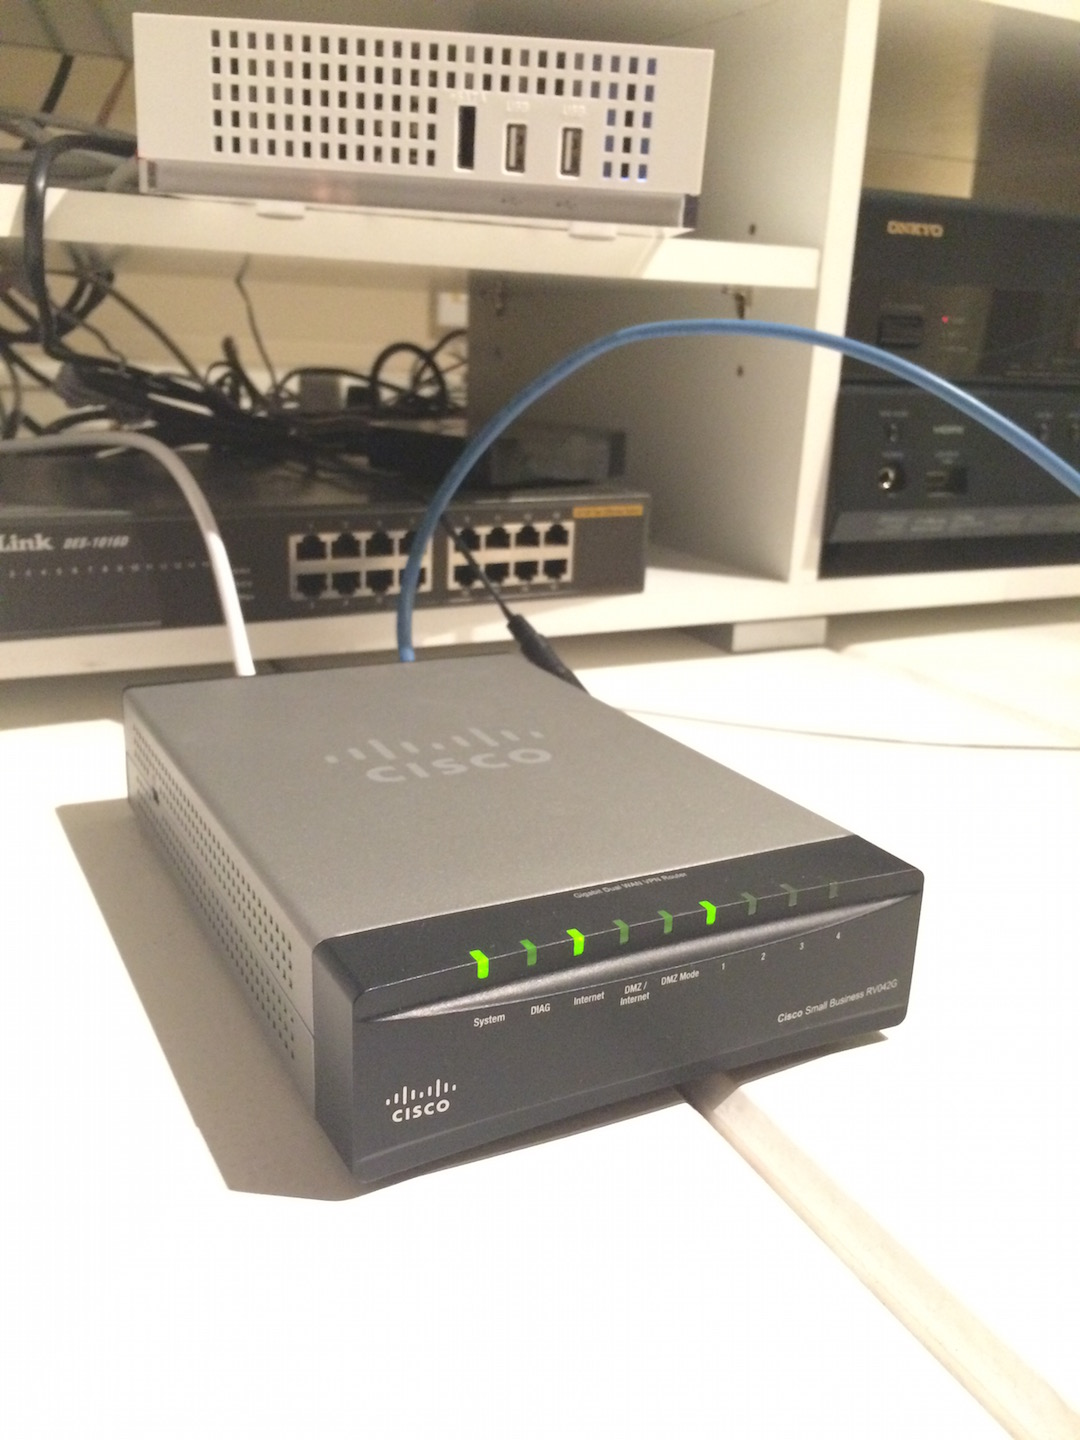 Fix the DIAG blinking led with Cisco RV042G router